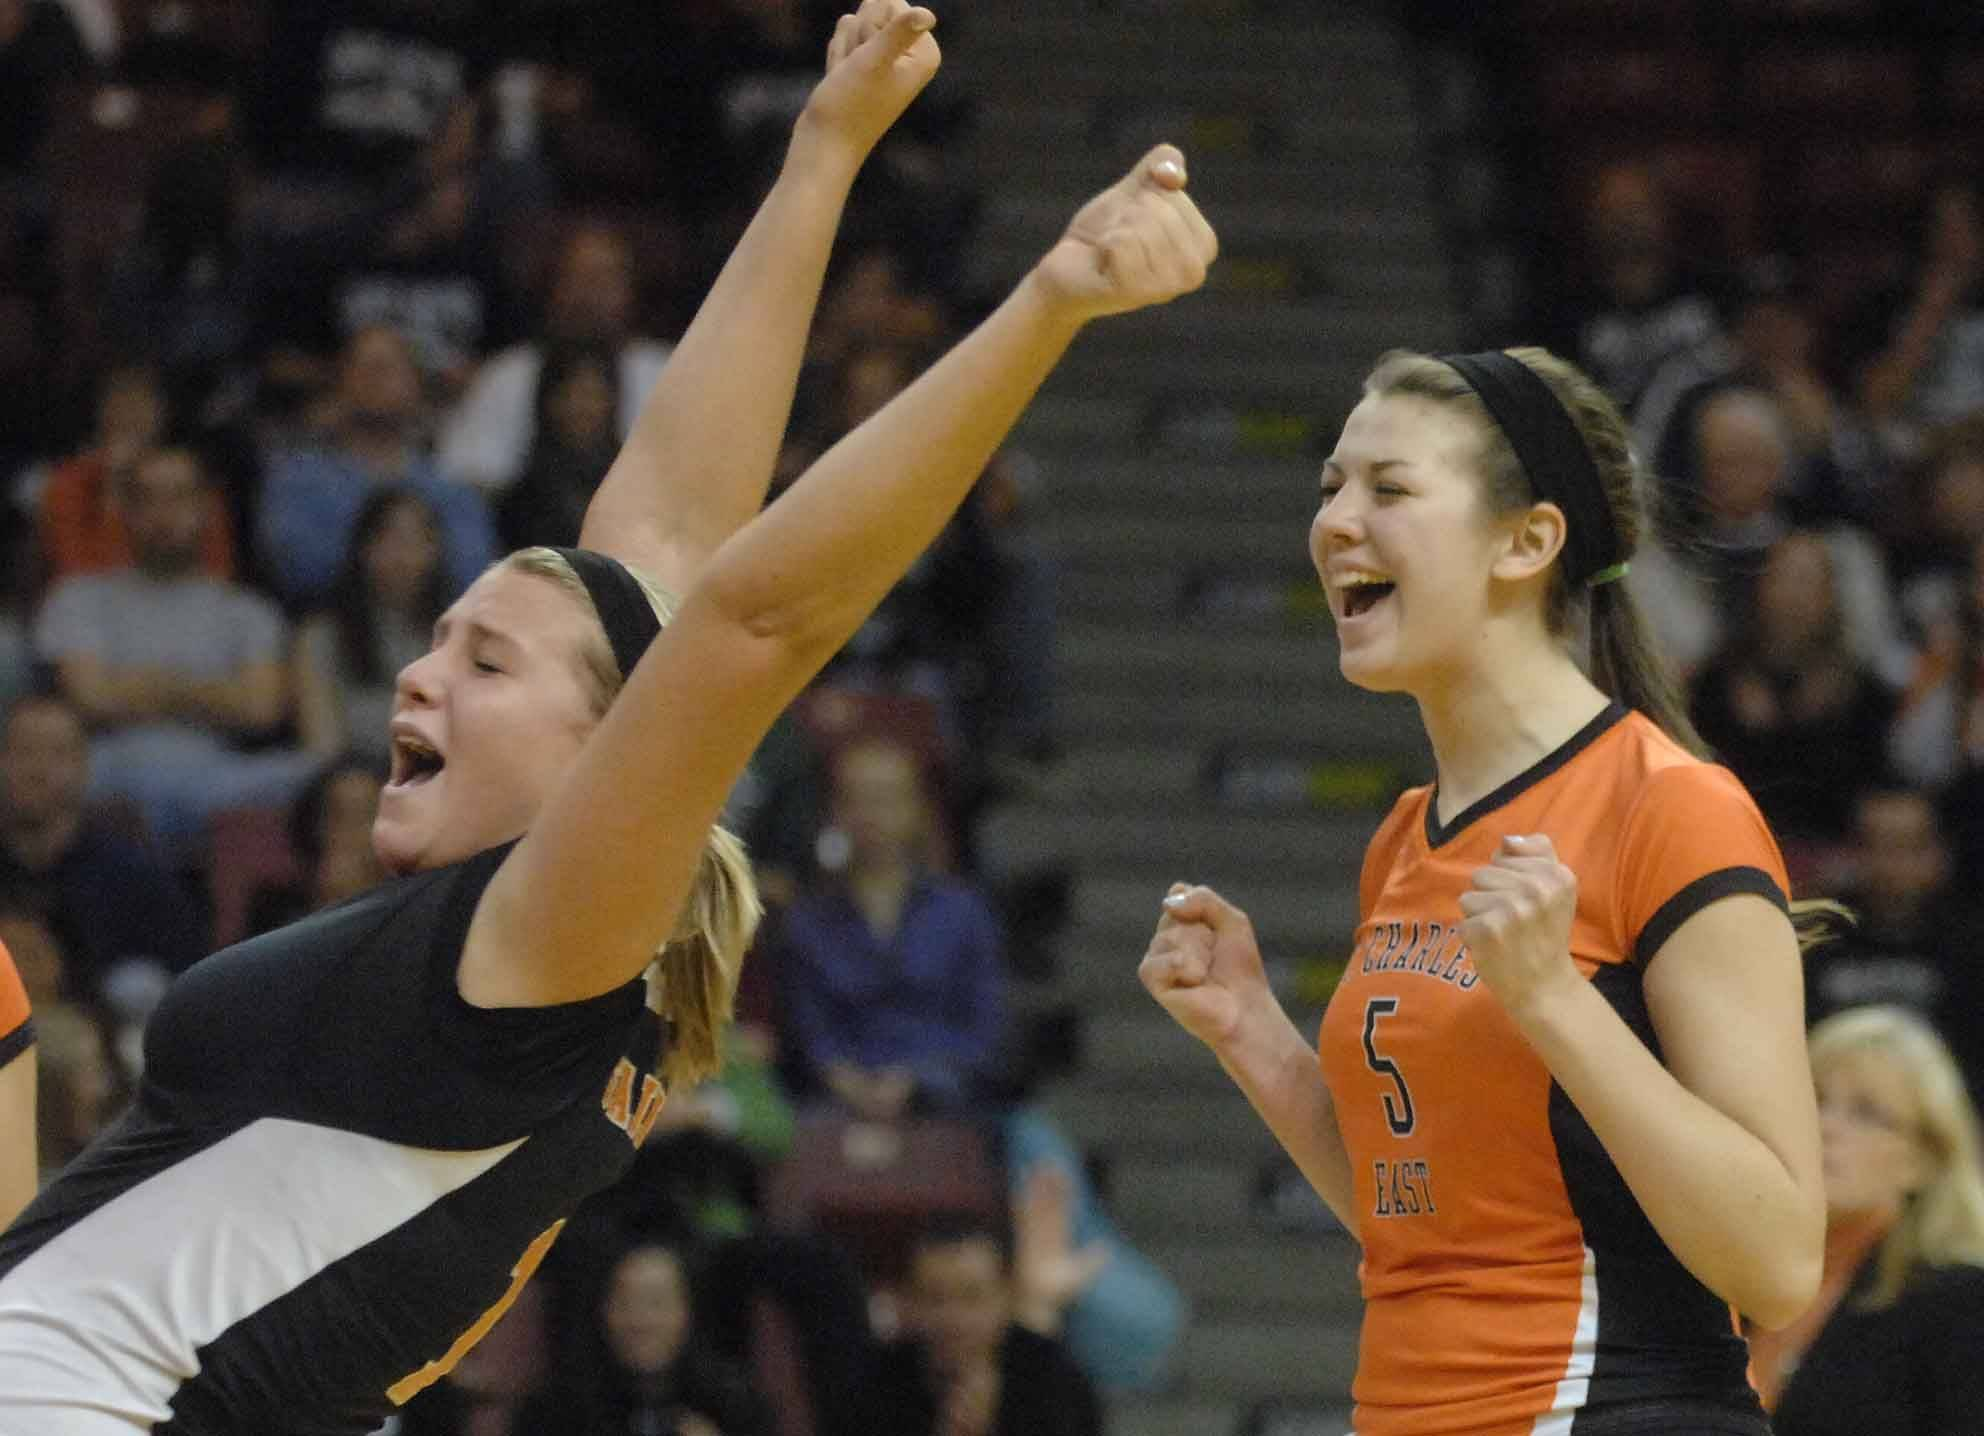 Maisey Mulvey,left, and Nicole Woods of St. Charles East let out a scream during the Benet vs. St. Charles East girls volleyball 4A semifinal Friday in Normal.